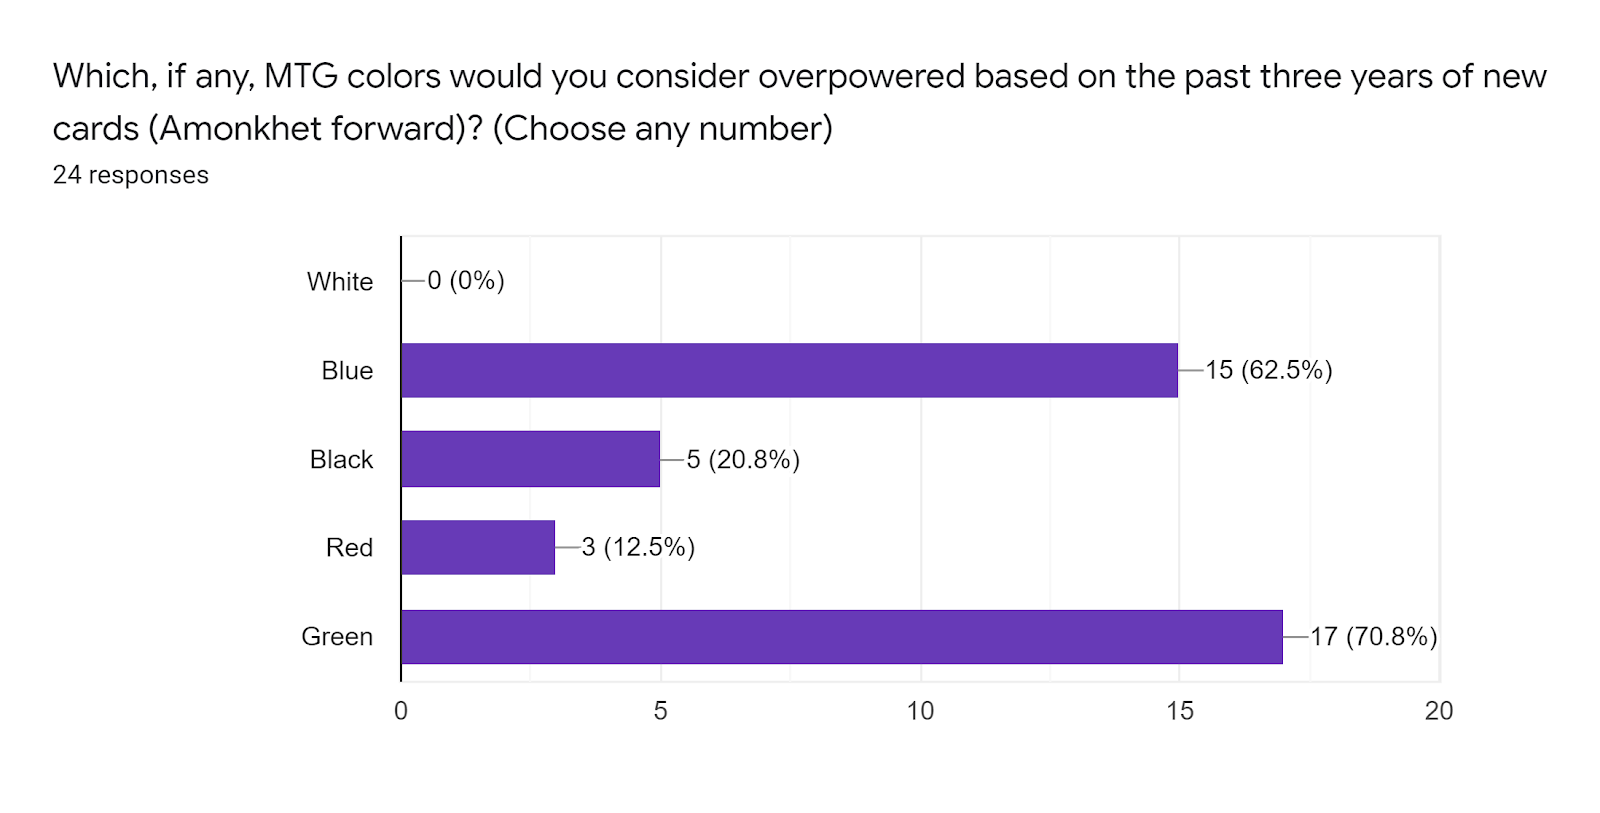 Forms response chart Question title Which if any MTG colors would you consider overpowered based on the past three years of new cards Amonkhet forward Choose any number Number of responses 24 responses